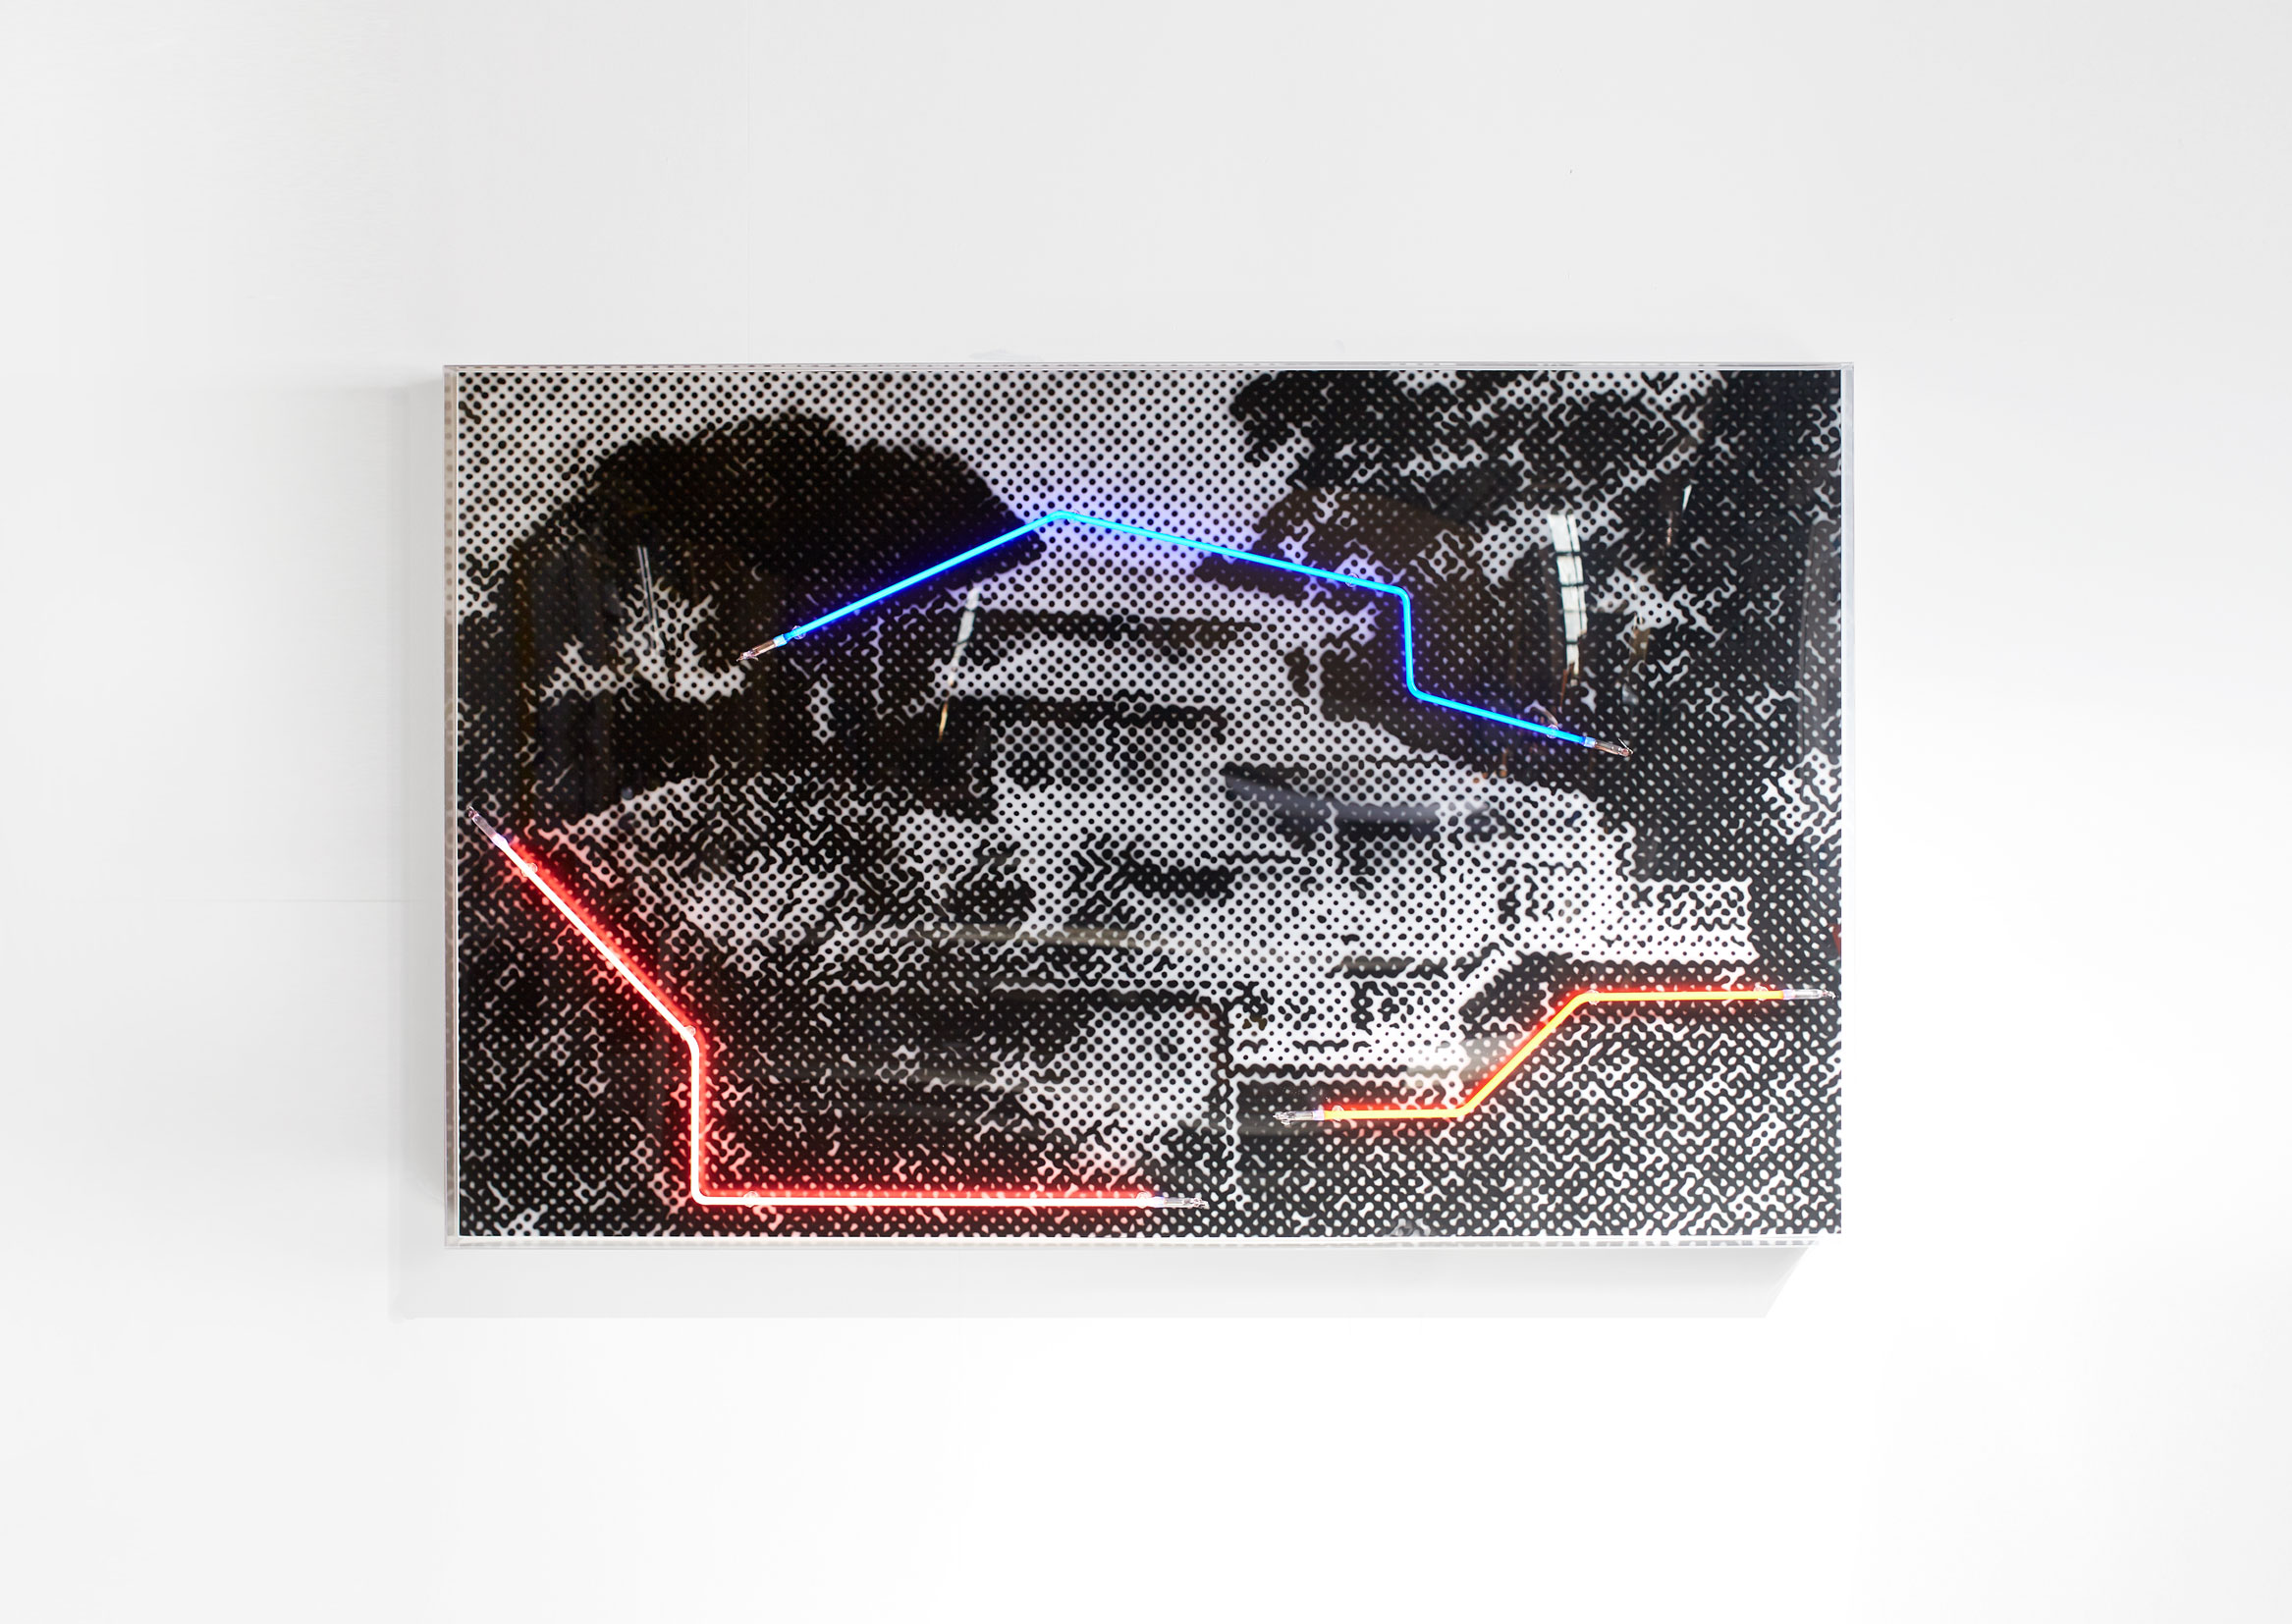 55 Bayview, 2019  Airbrush acrylic polymer and neon on dibond, acrylic frame 125x200cm